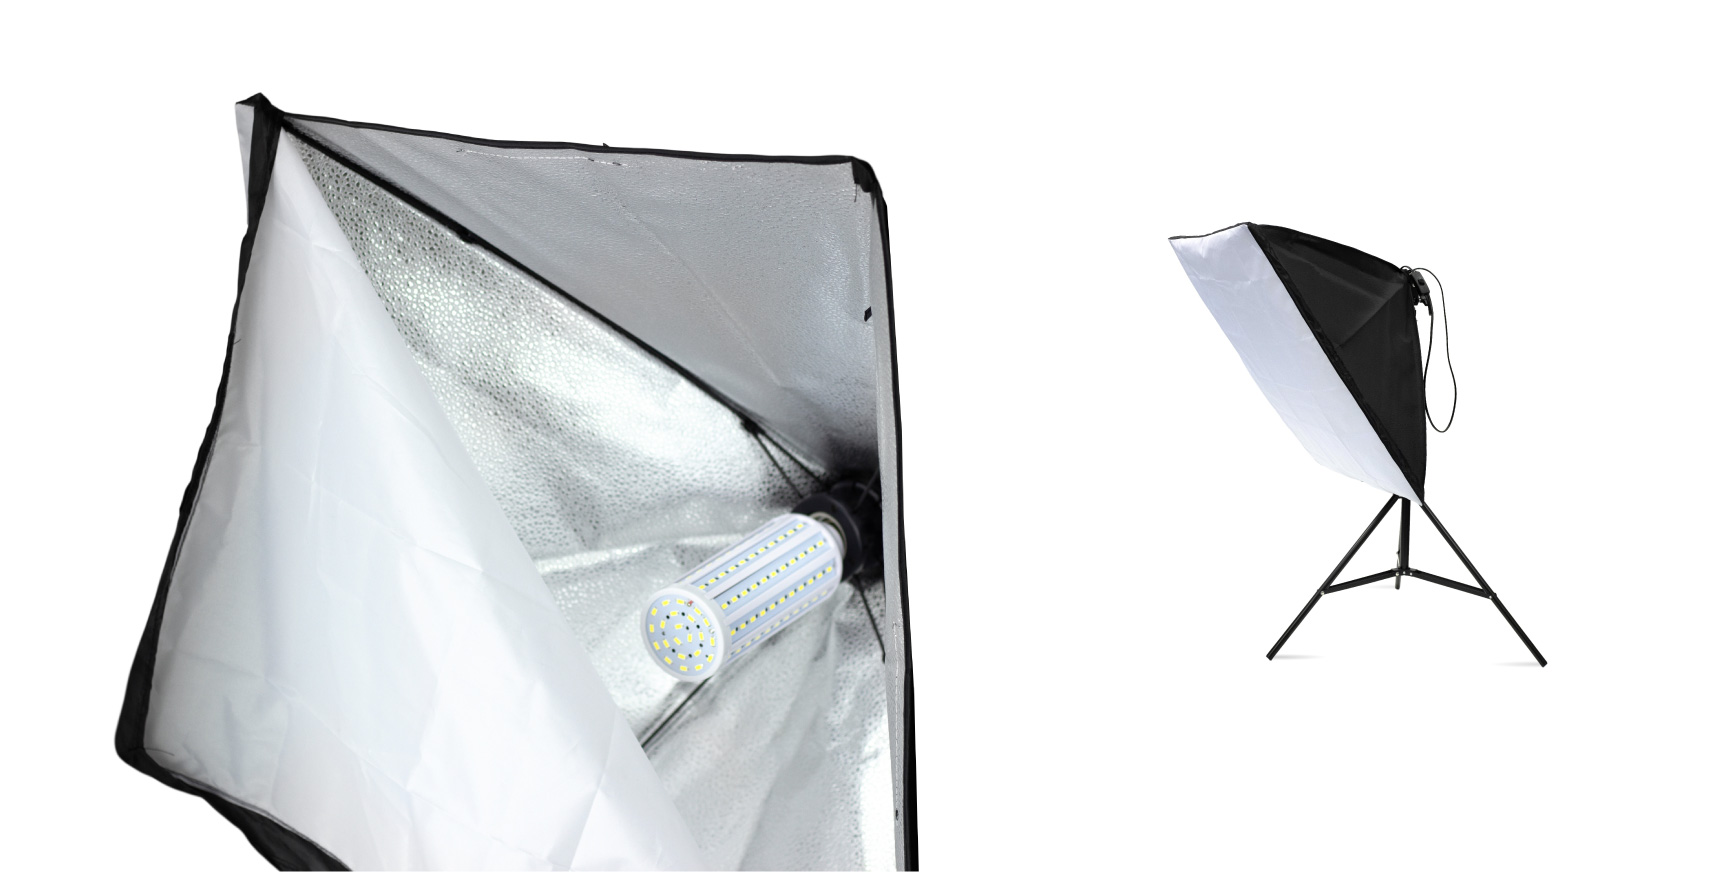 lighting softboxes with LED bulbs